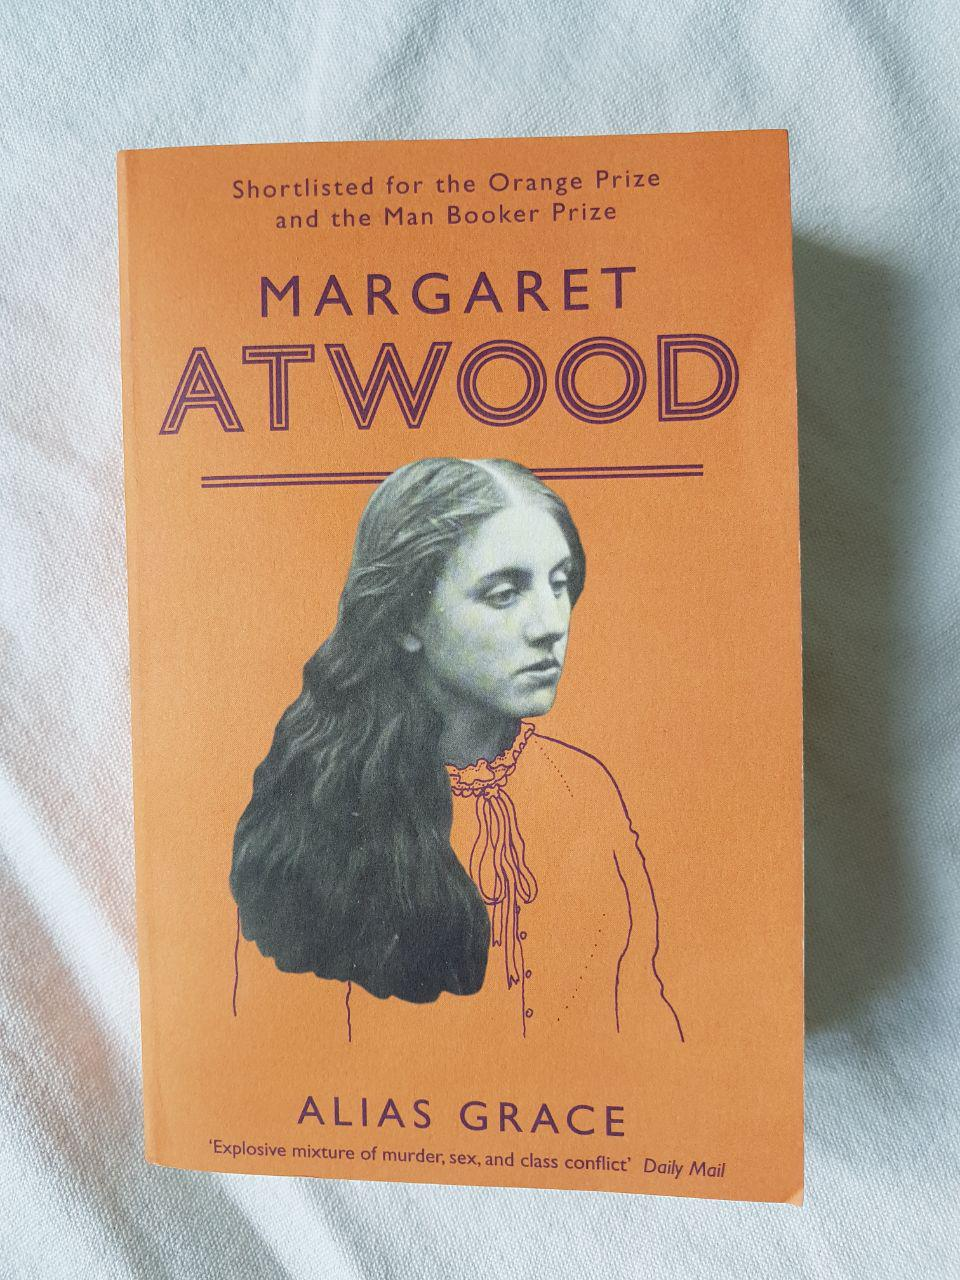 margaret atwood 2 essay Margaret atwood and the hierarchy of contempt1 peter watts start with a metaphor for literary respectability: a spectrum, ranging from sullen infrared up to.